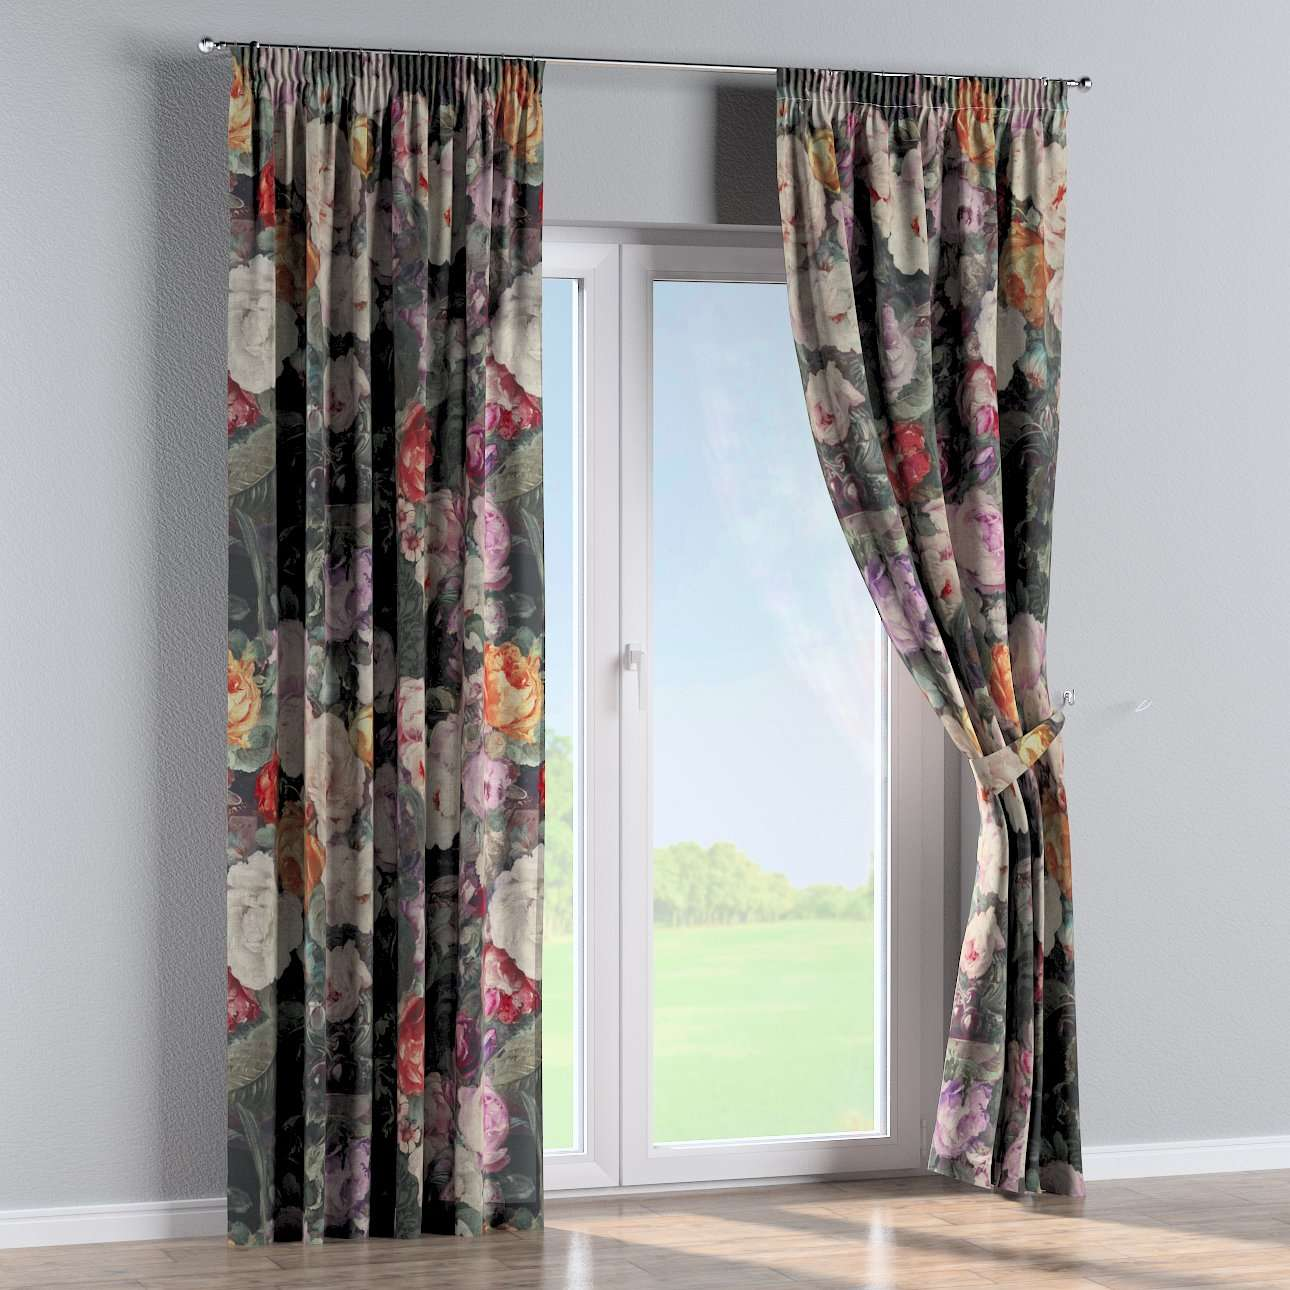 Pencil pleat curtains in collection Linen, fabric: 142-26